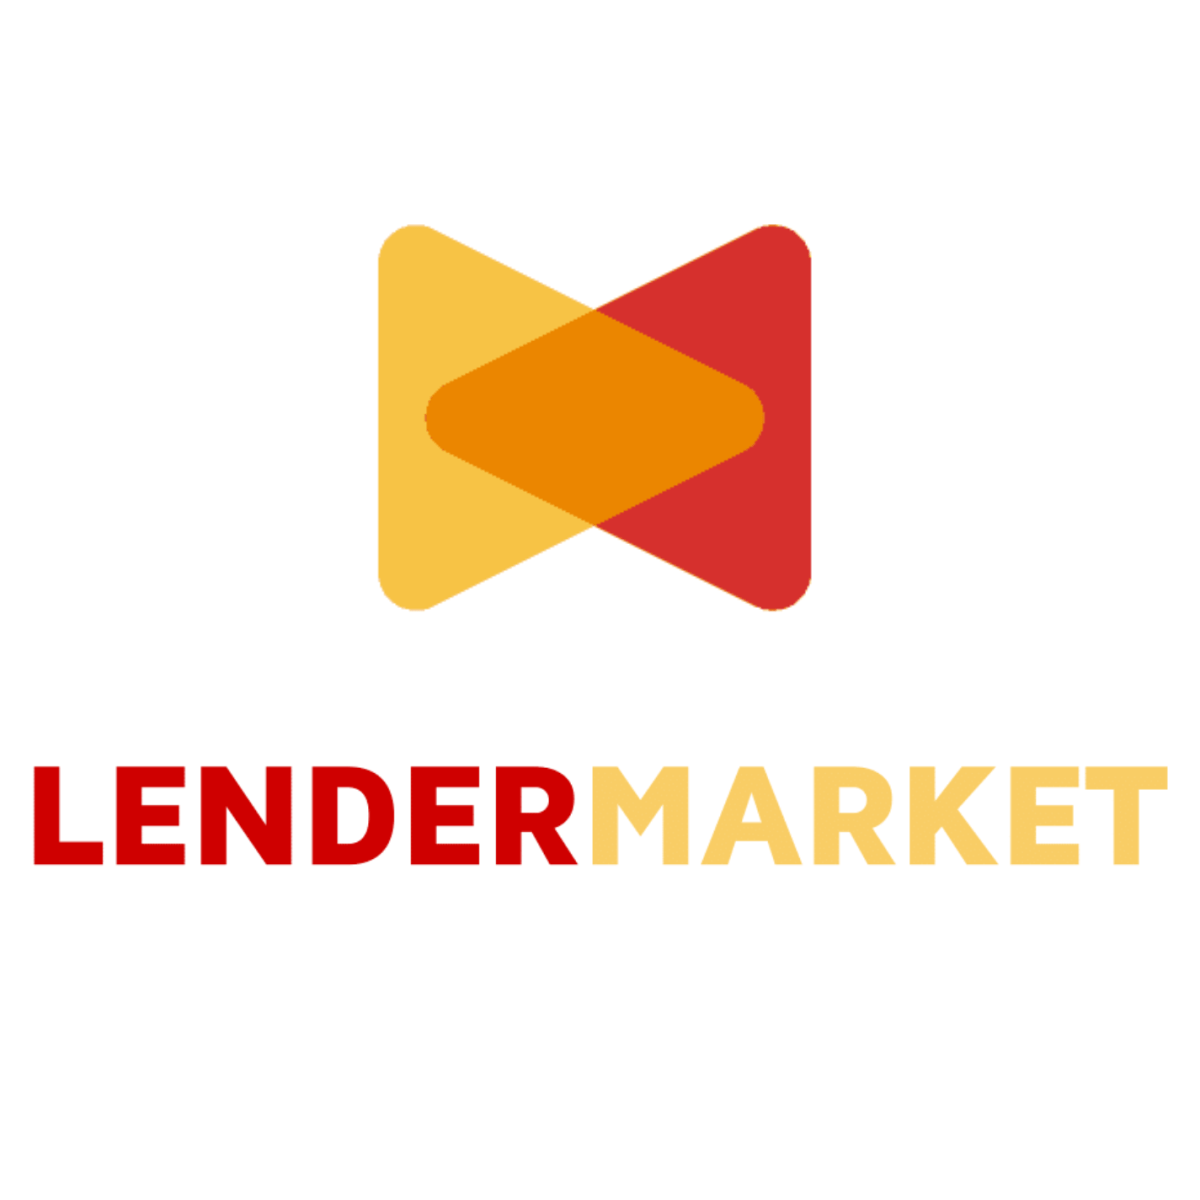 LenderMarket Logo @ Savings4Freedom